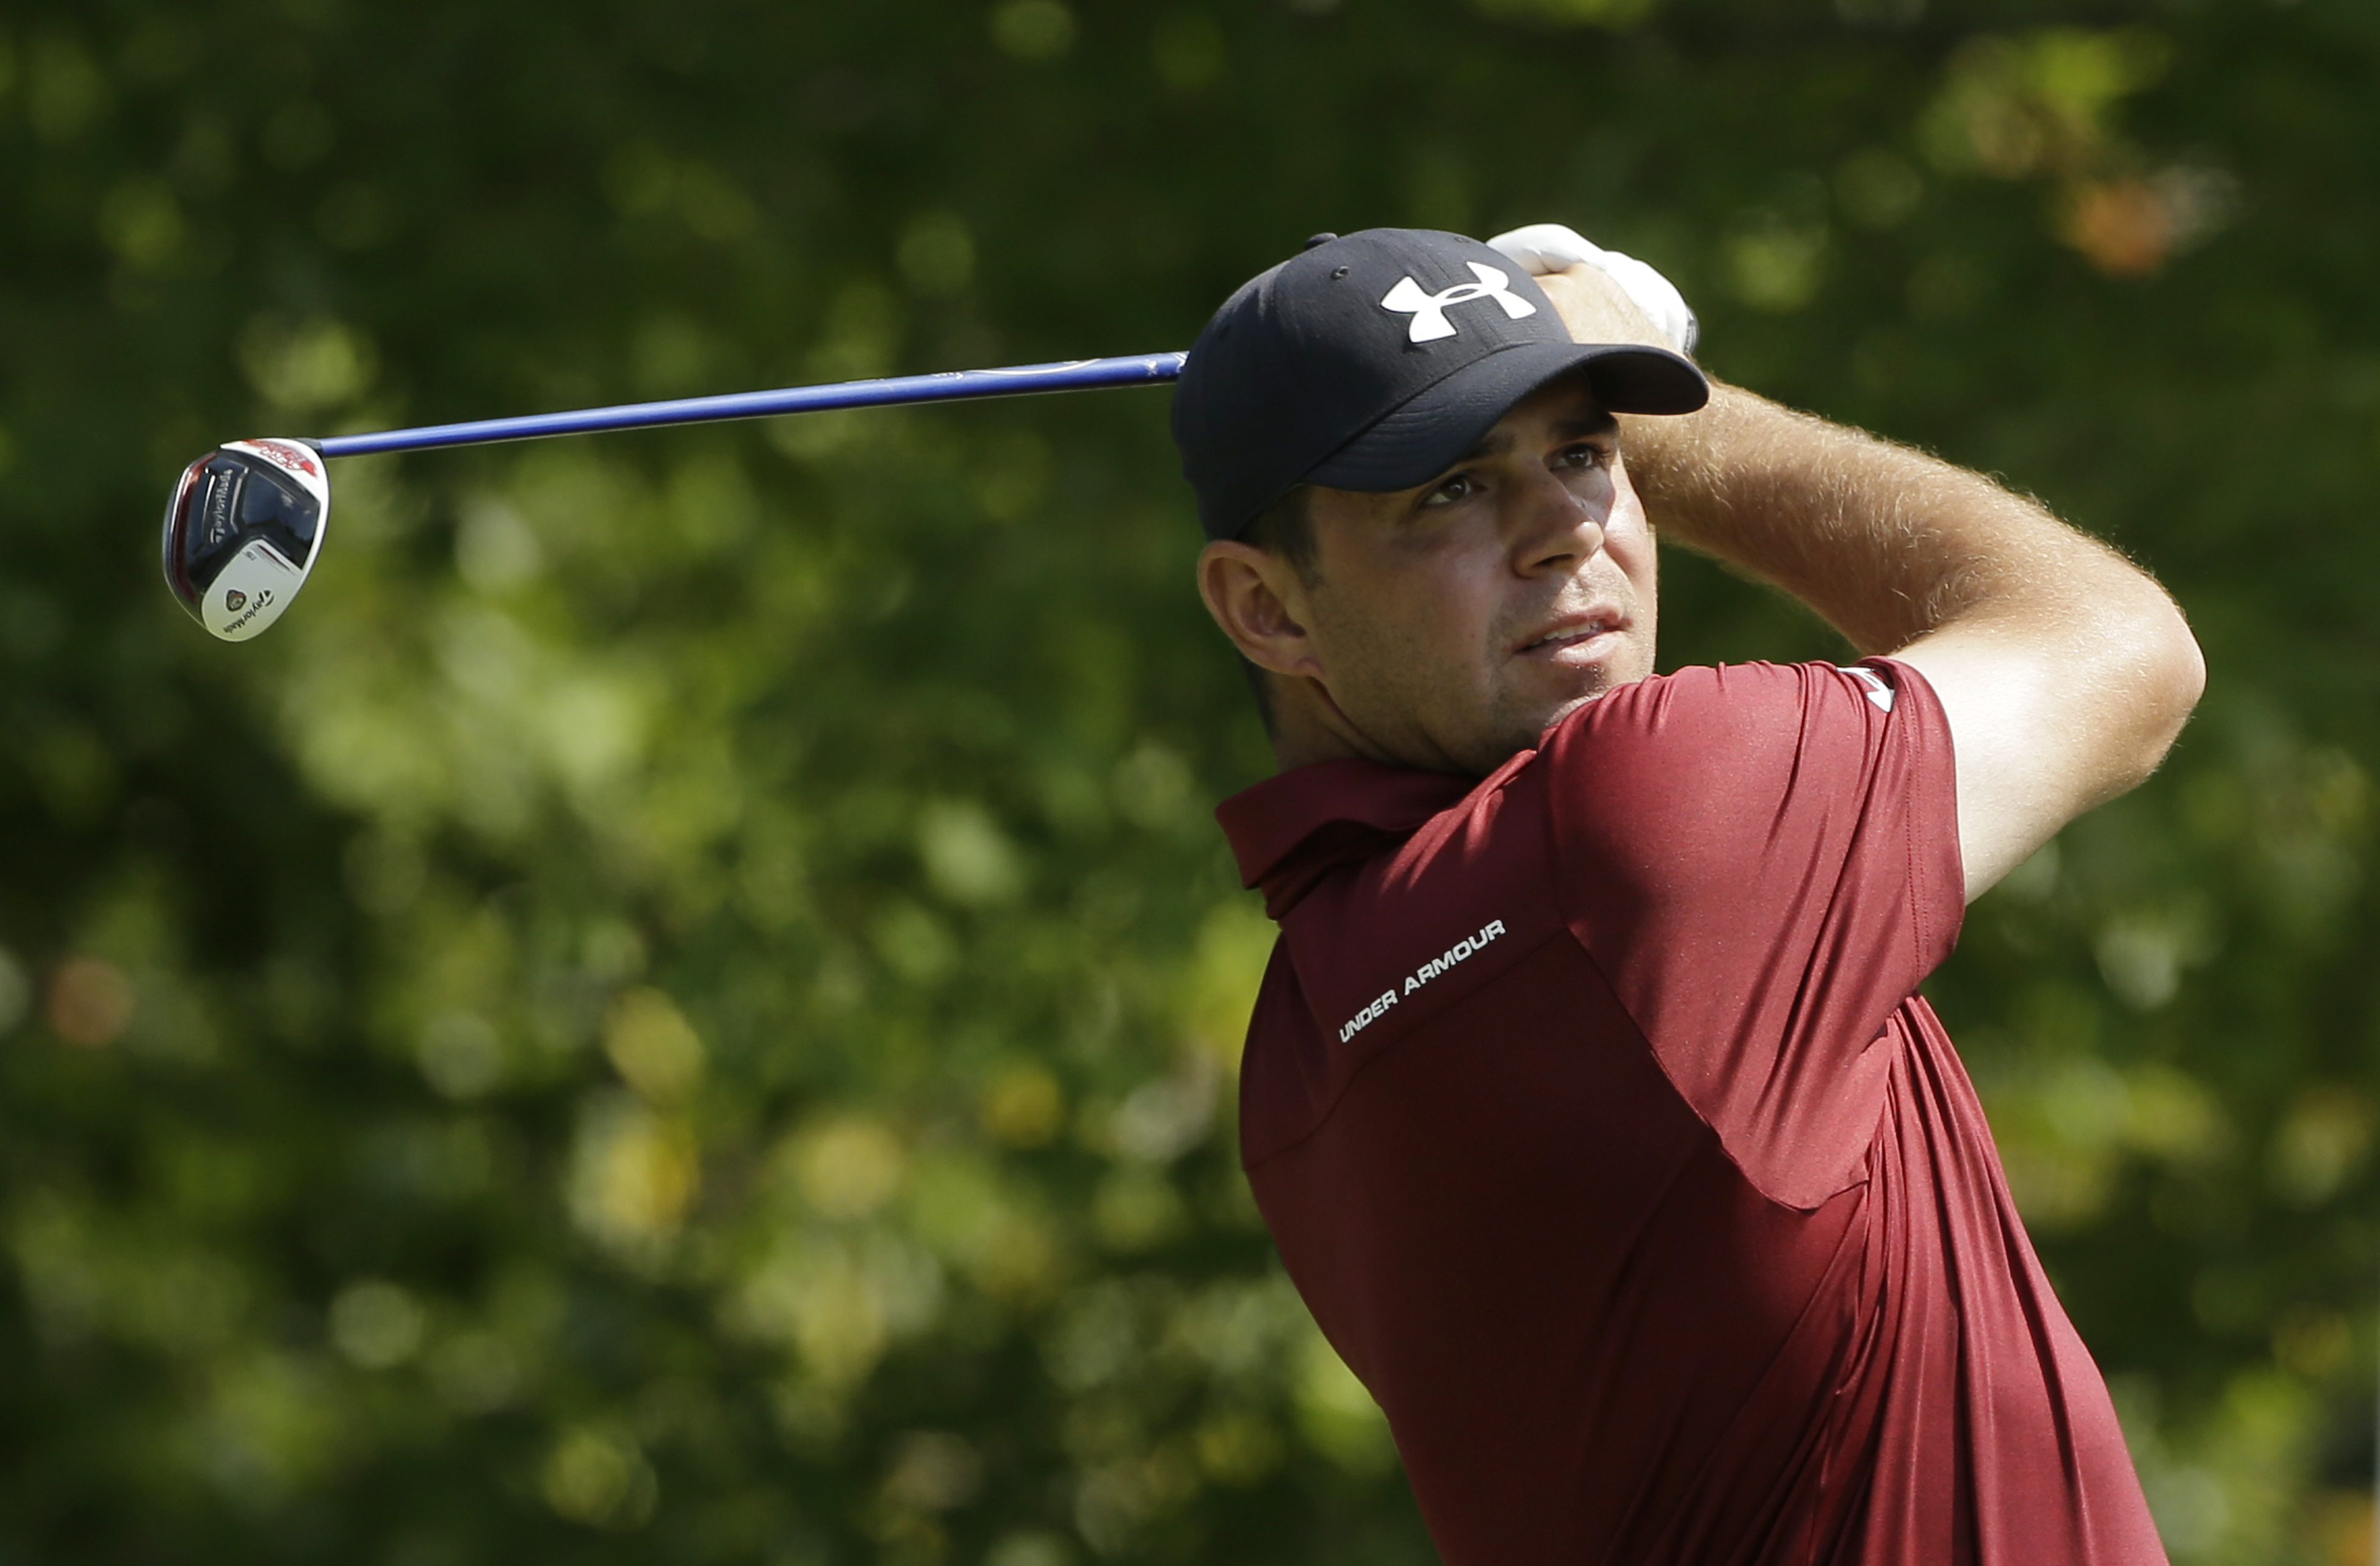 Gary Woodland watches his tee shot on the fourth hole during the third round of the Deutsche Bank Championship golf tournament Sunday, Sept. 4, 2016, in Norton, Mass. (AP Photo/Steven Senne)